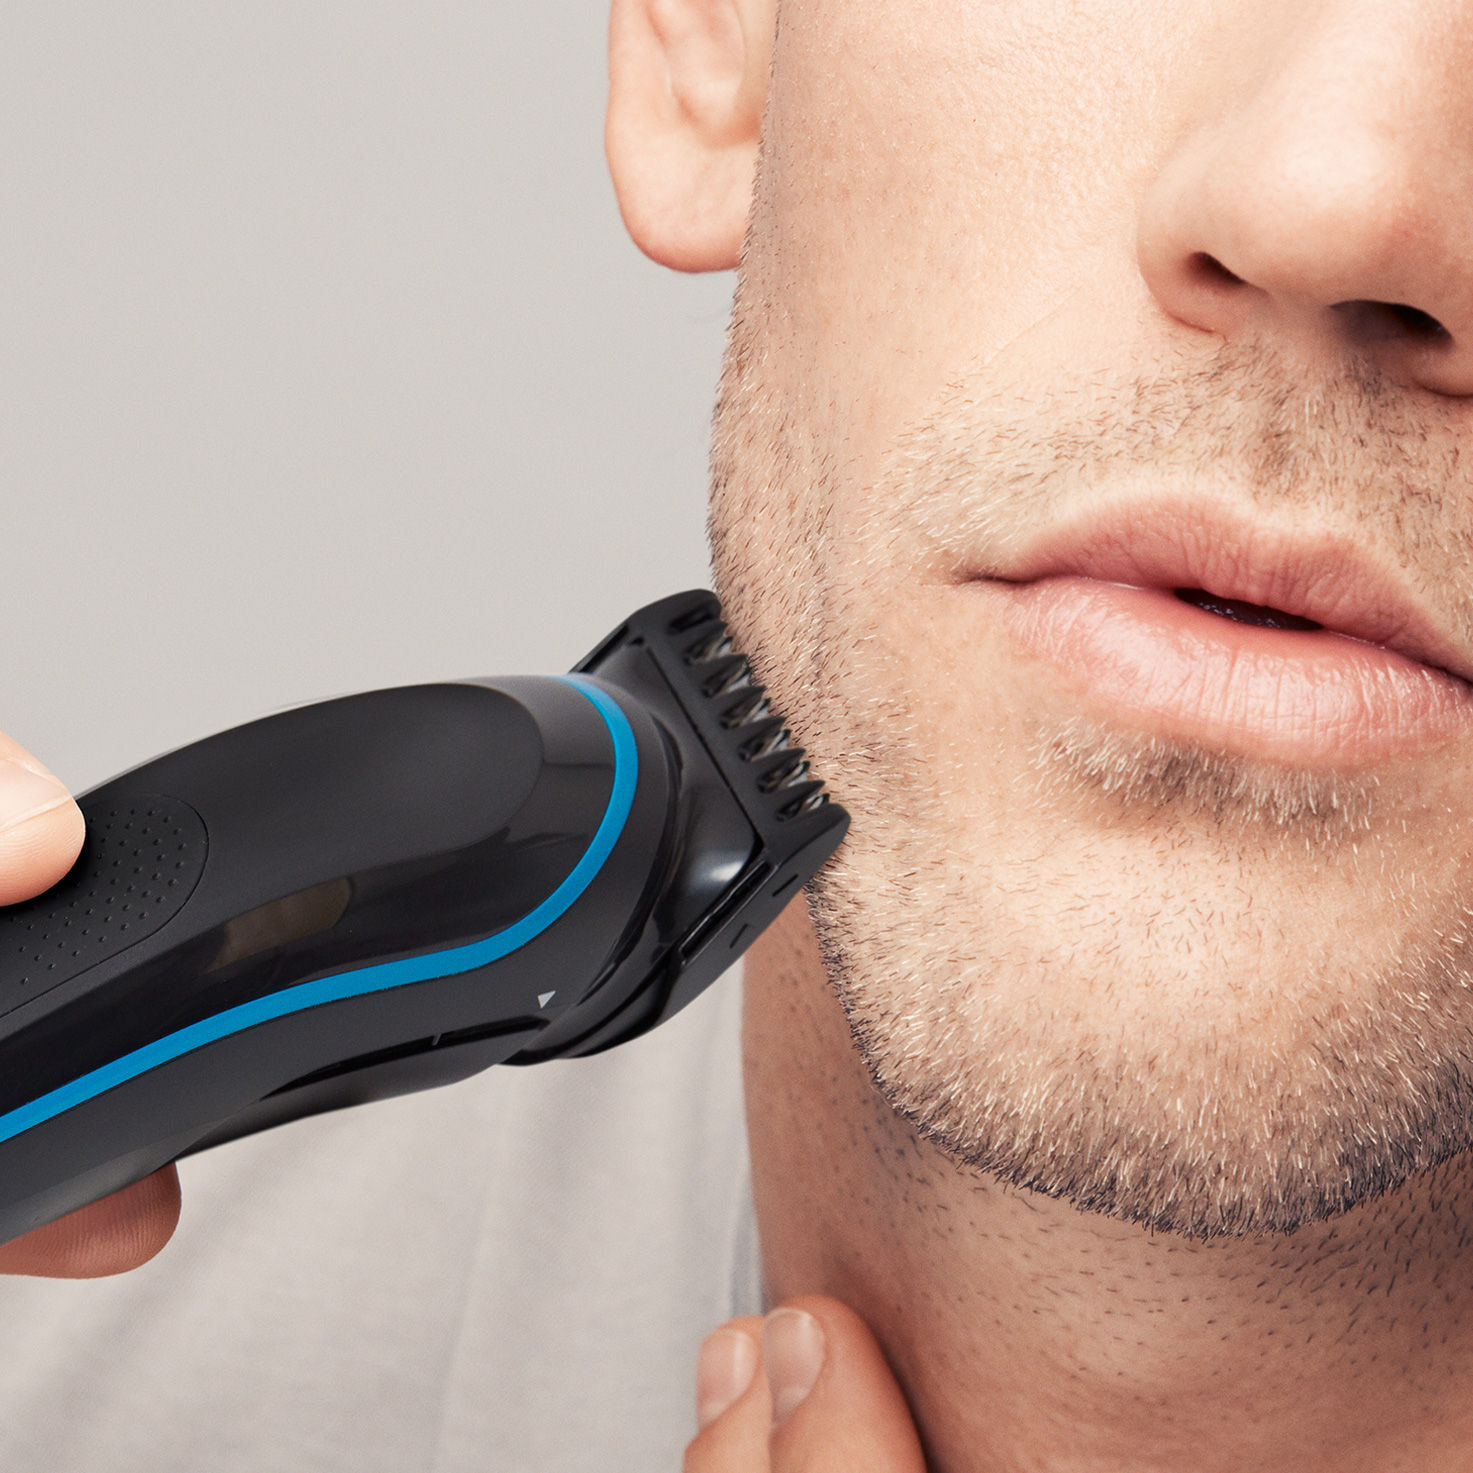 Braun All-in-one trimmer MGK5080 - In use